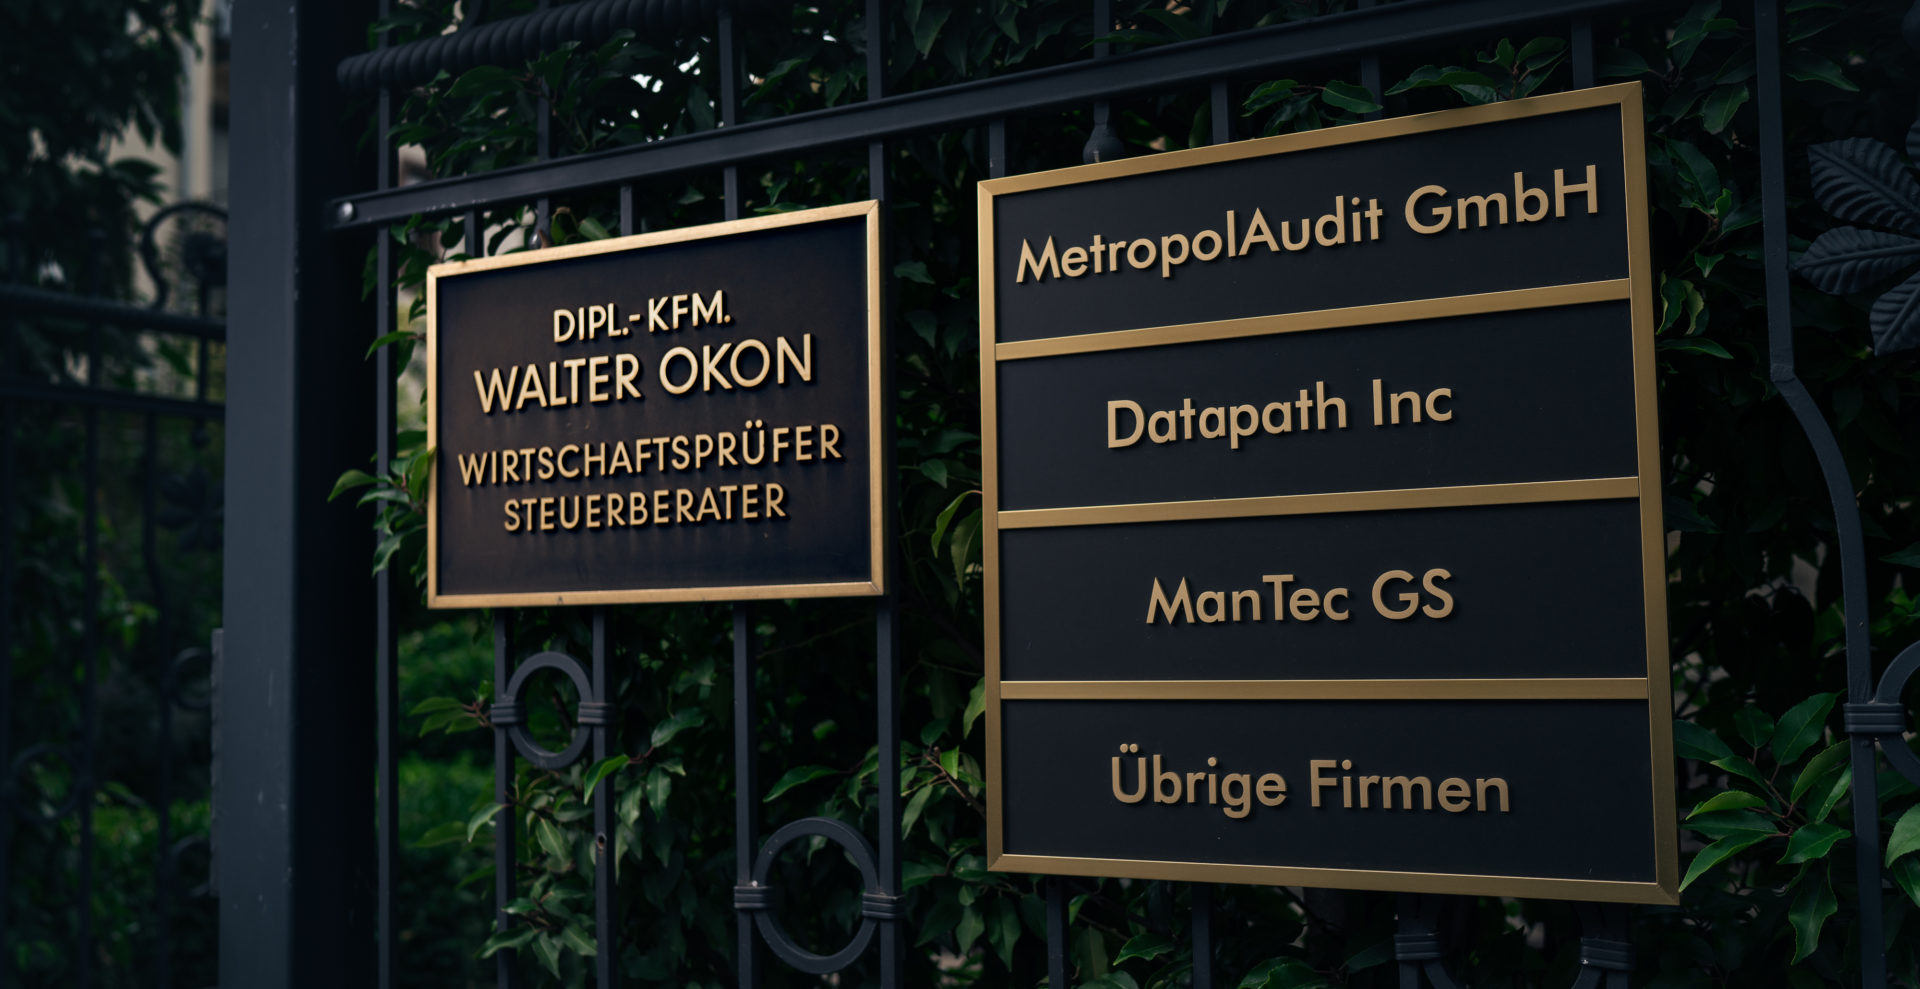 Gs Prüfung Homepage - Accounting & Tax Consultancy Walter Okon - Over 20 Years In Mannheim